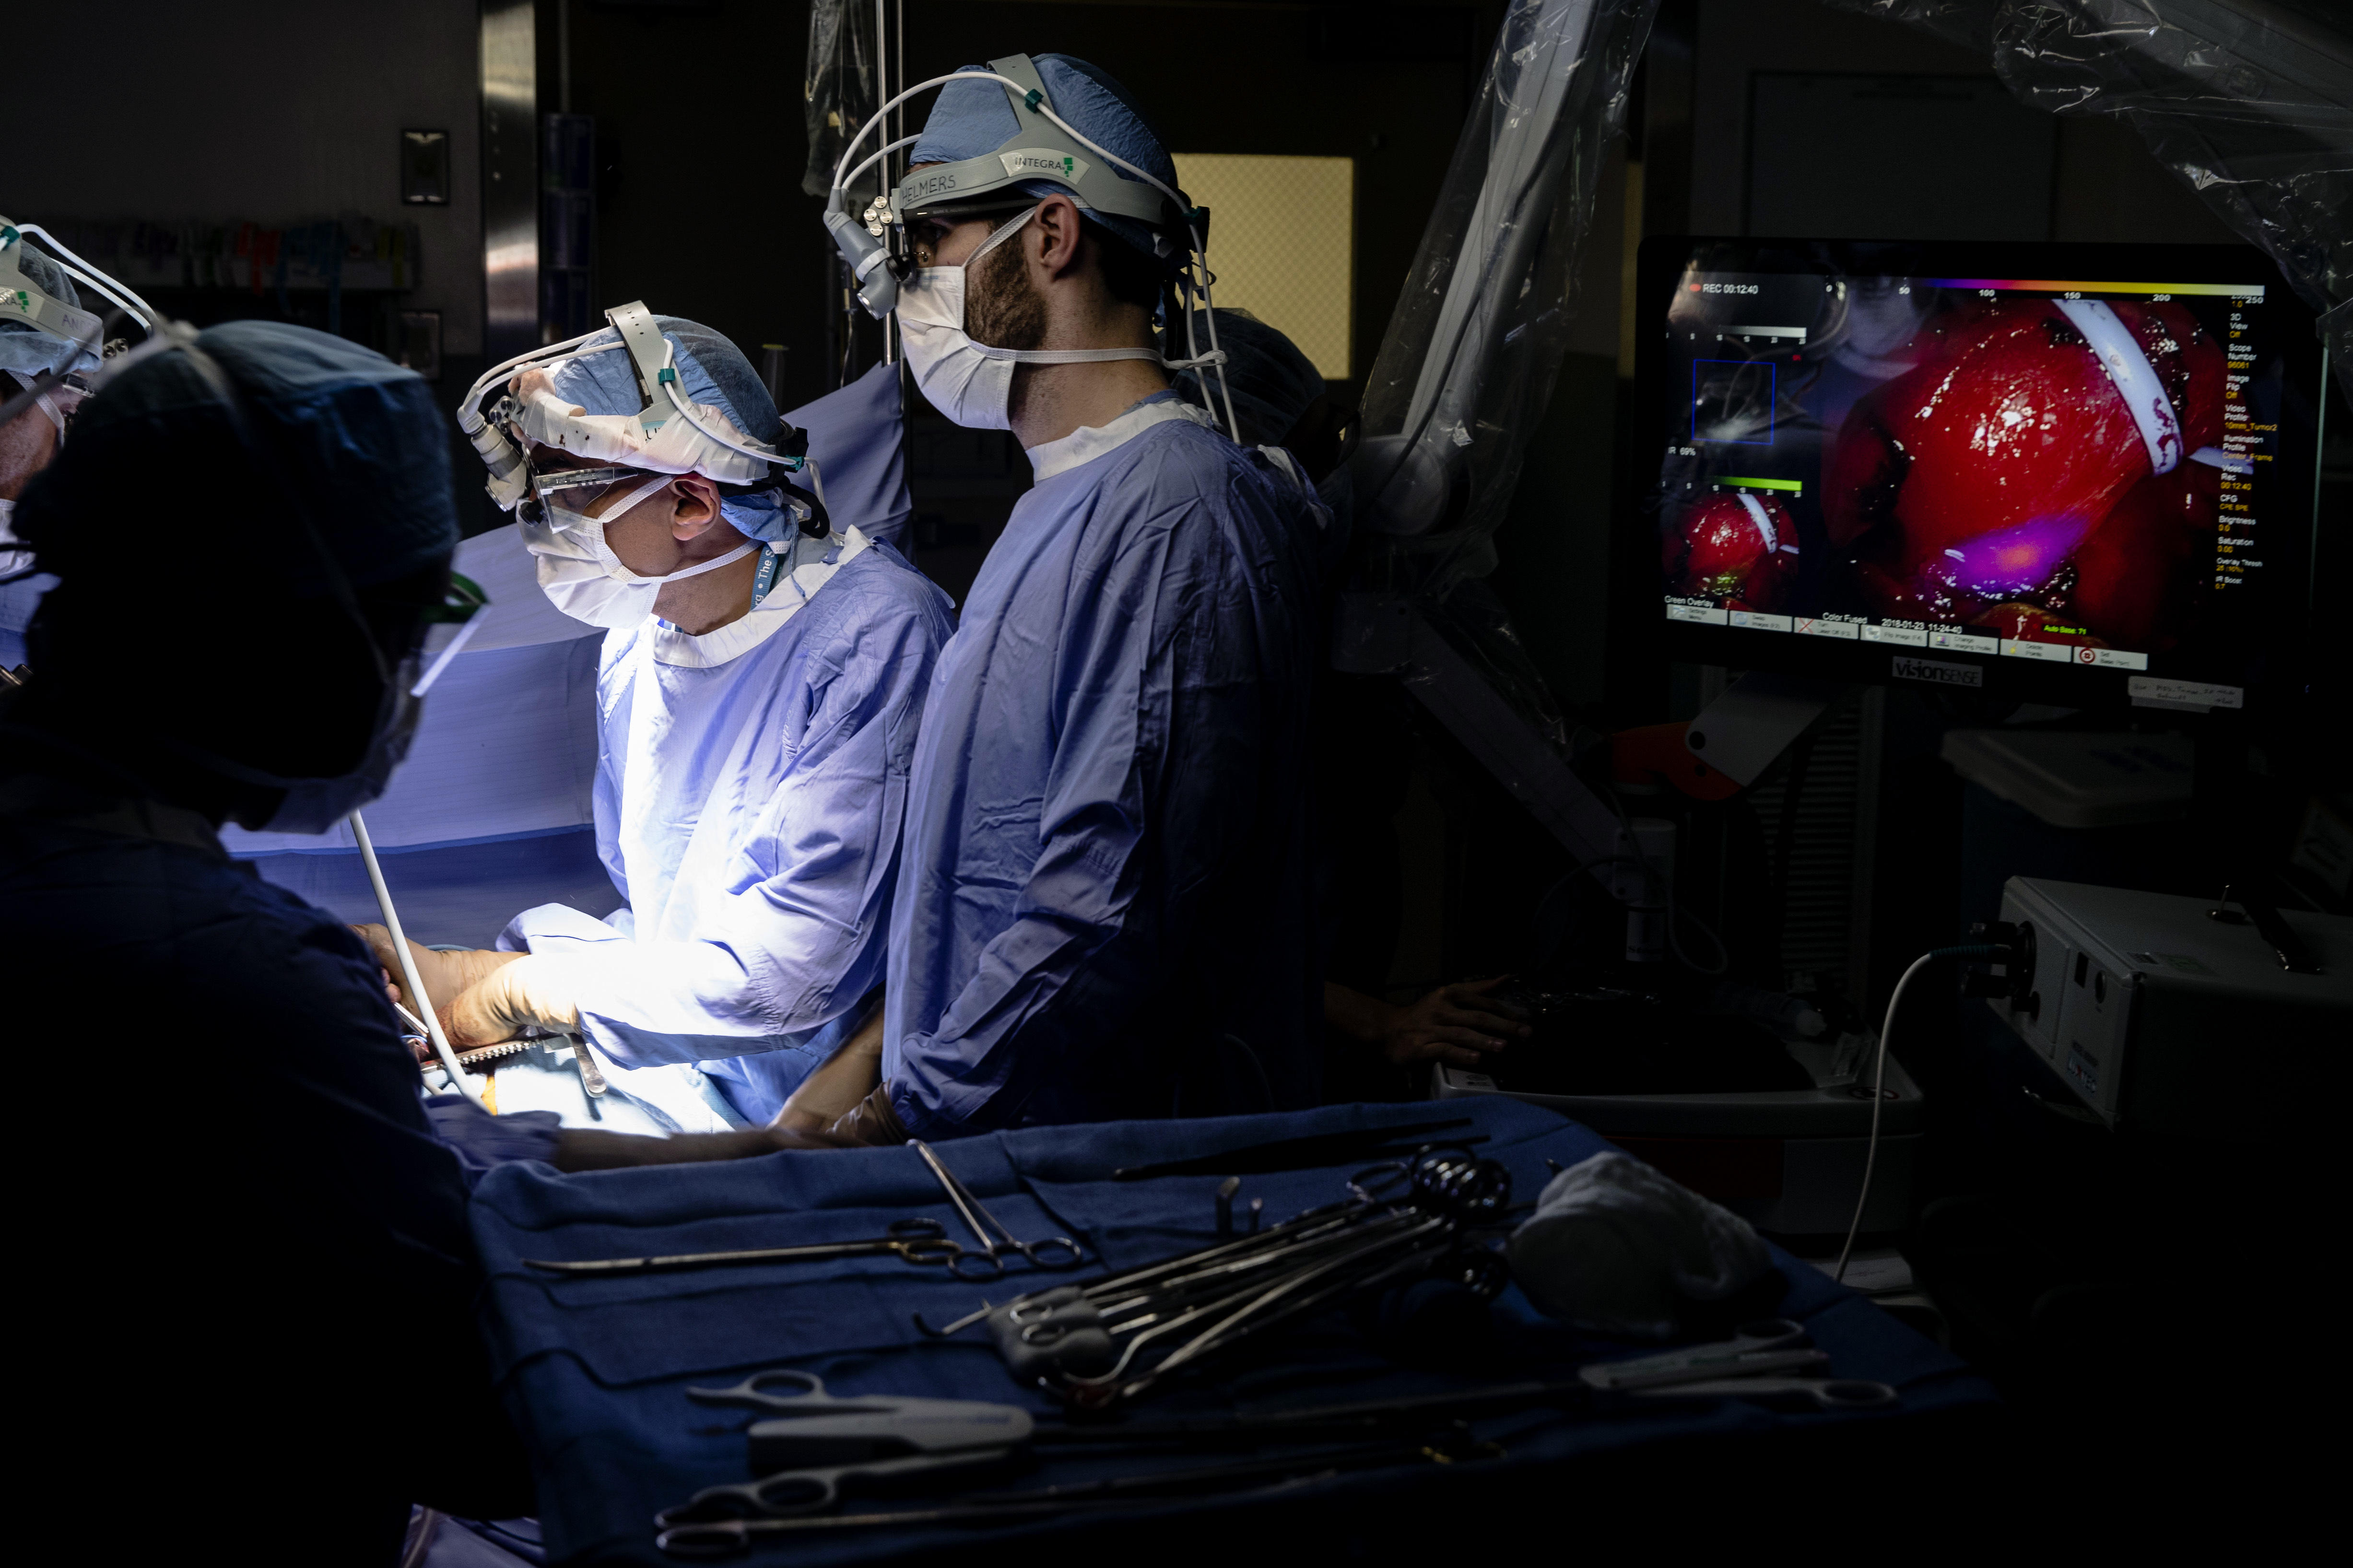 Surgeons target hidden cancer cells with help from glowing